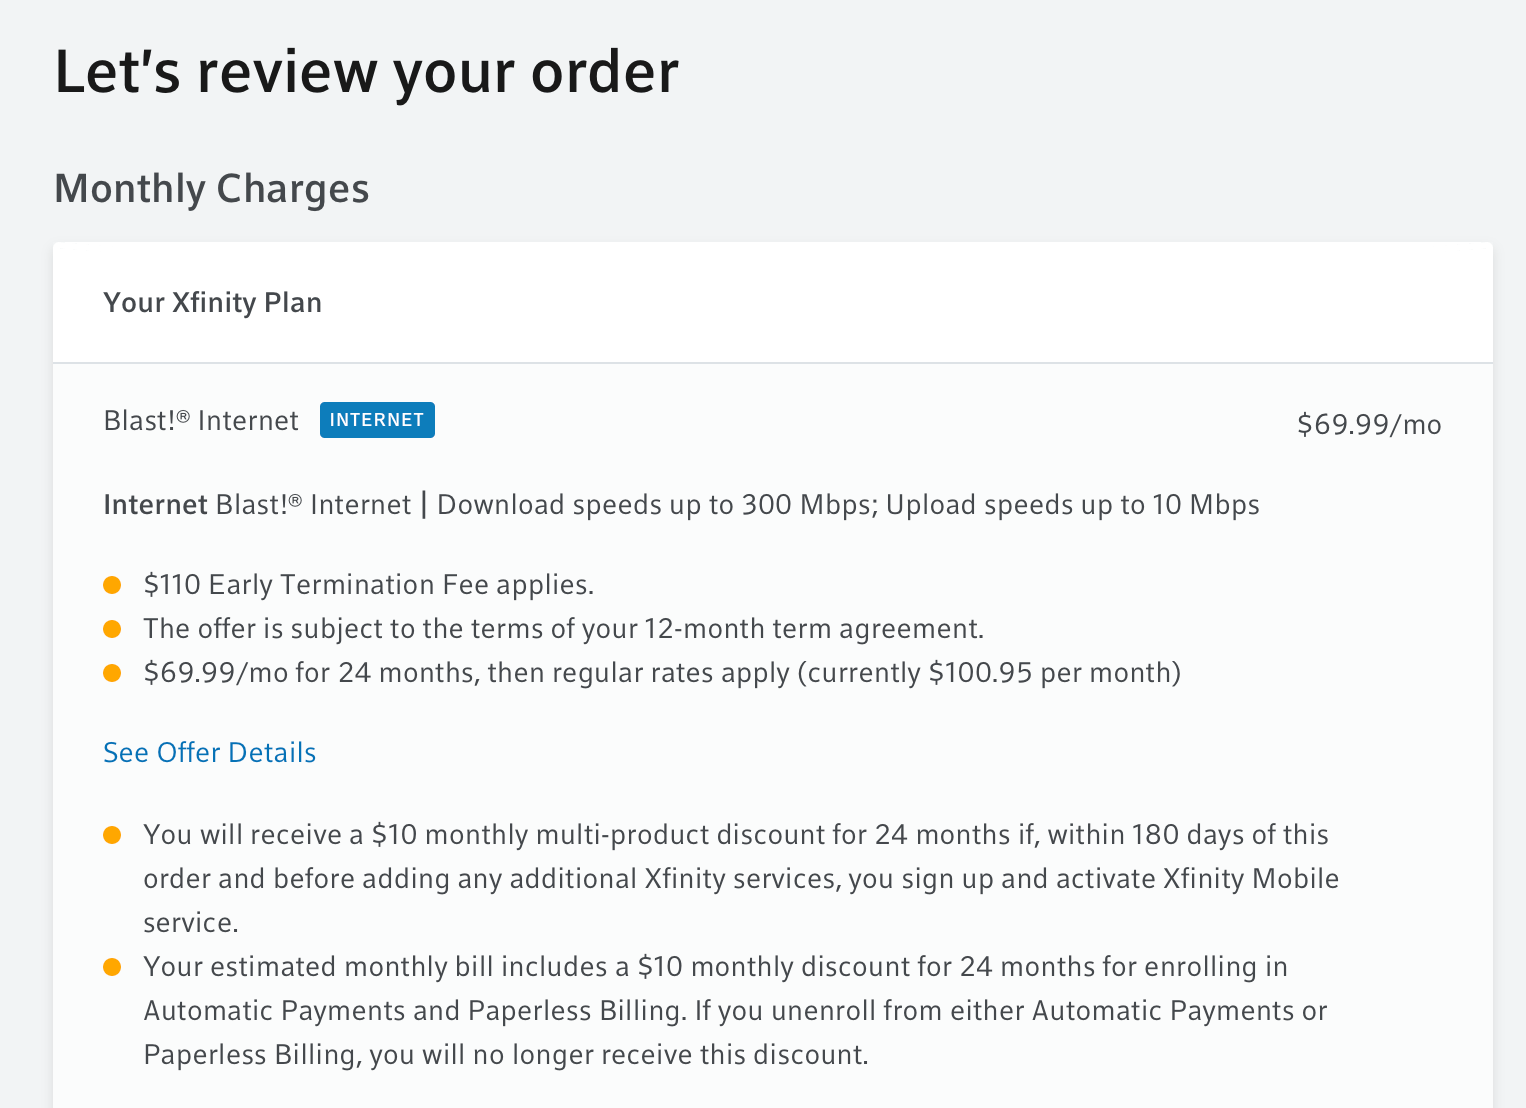 The last page in Comcast's ordering system.